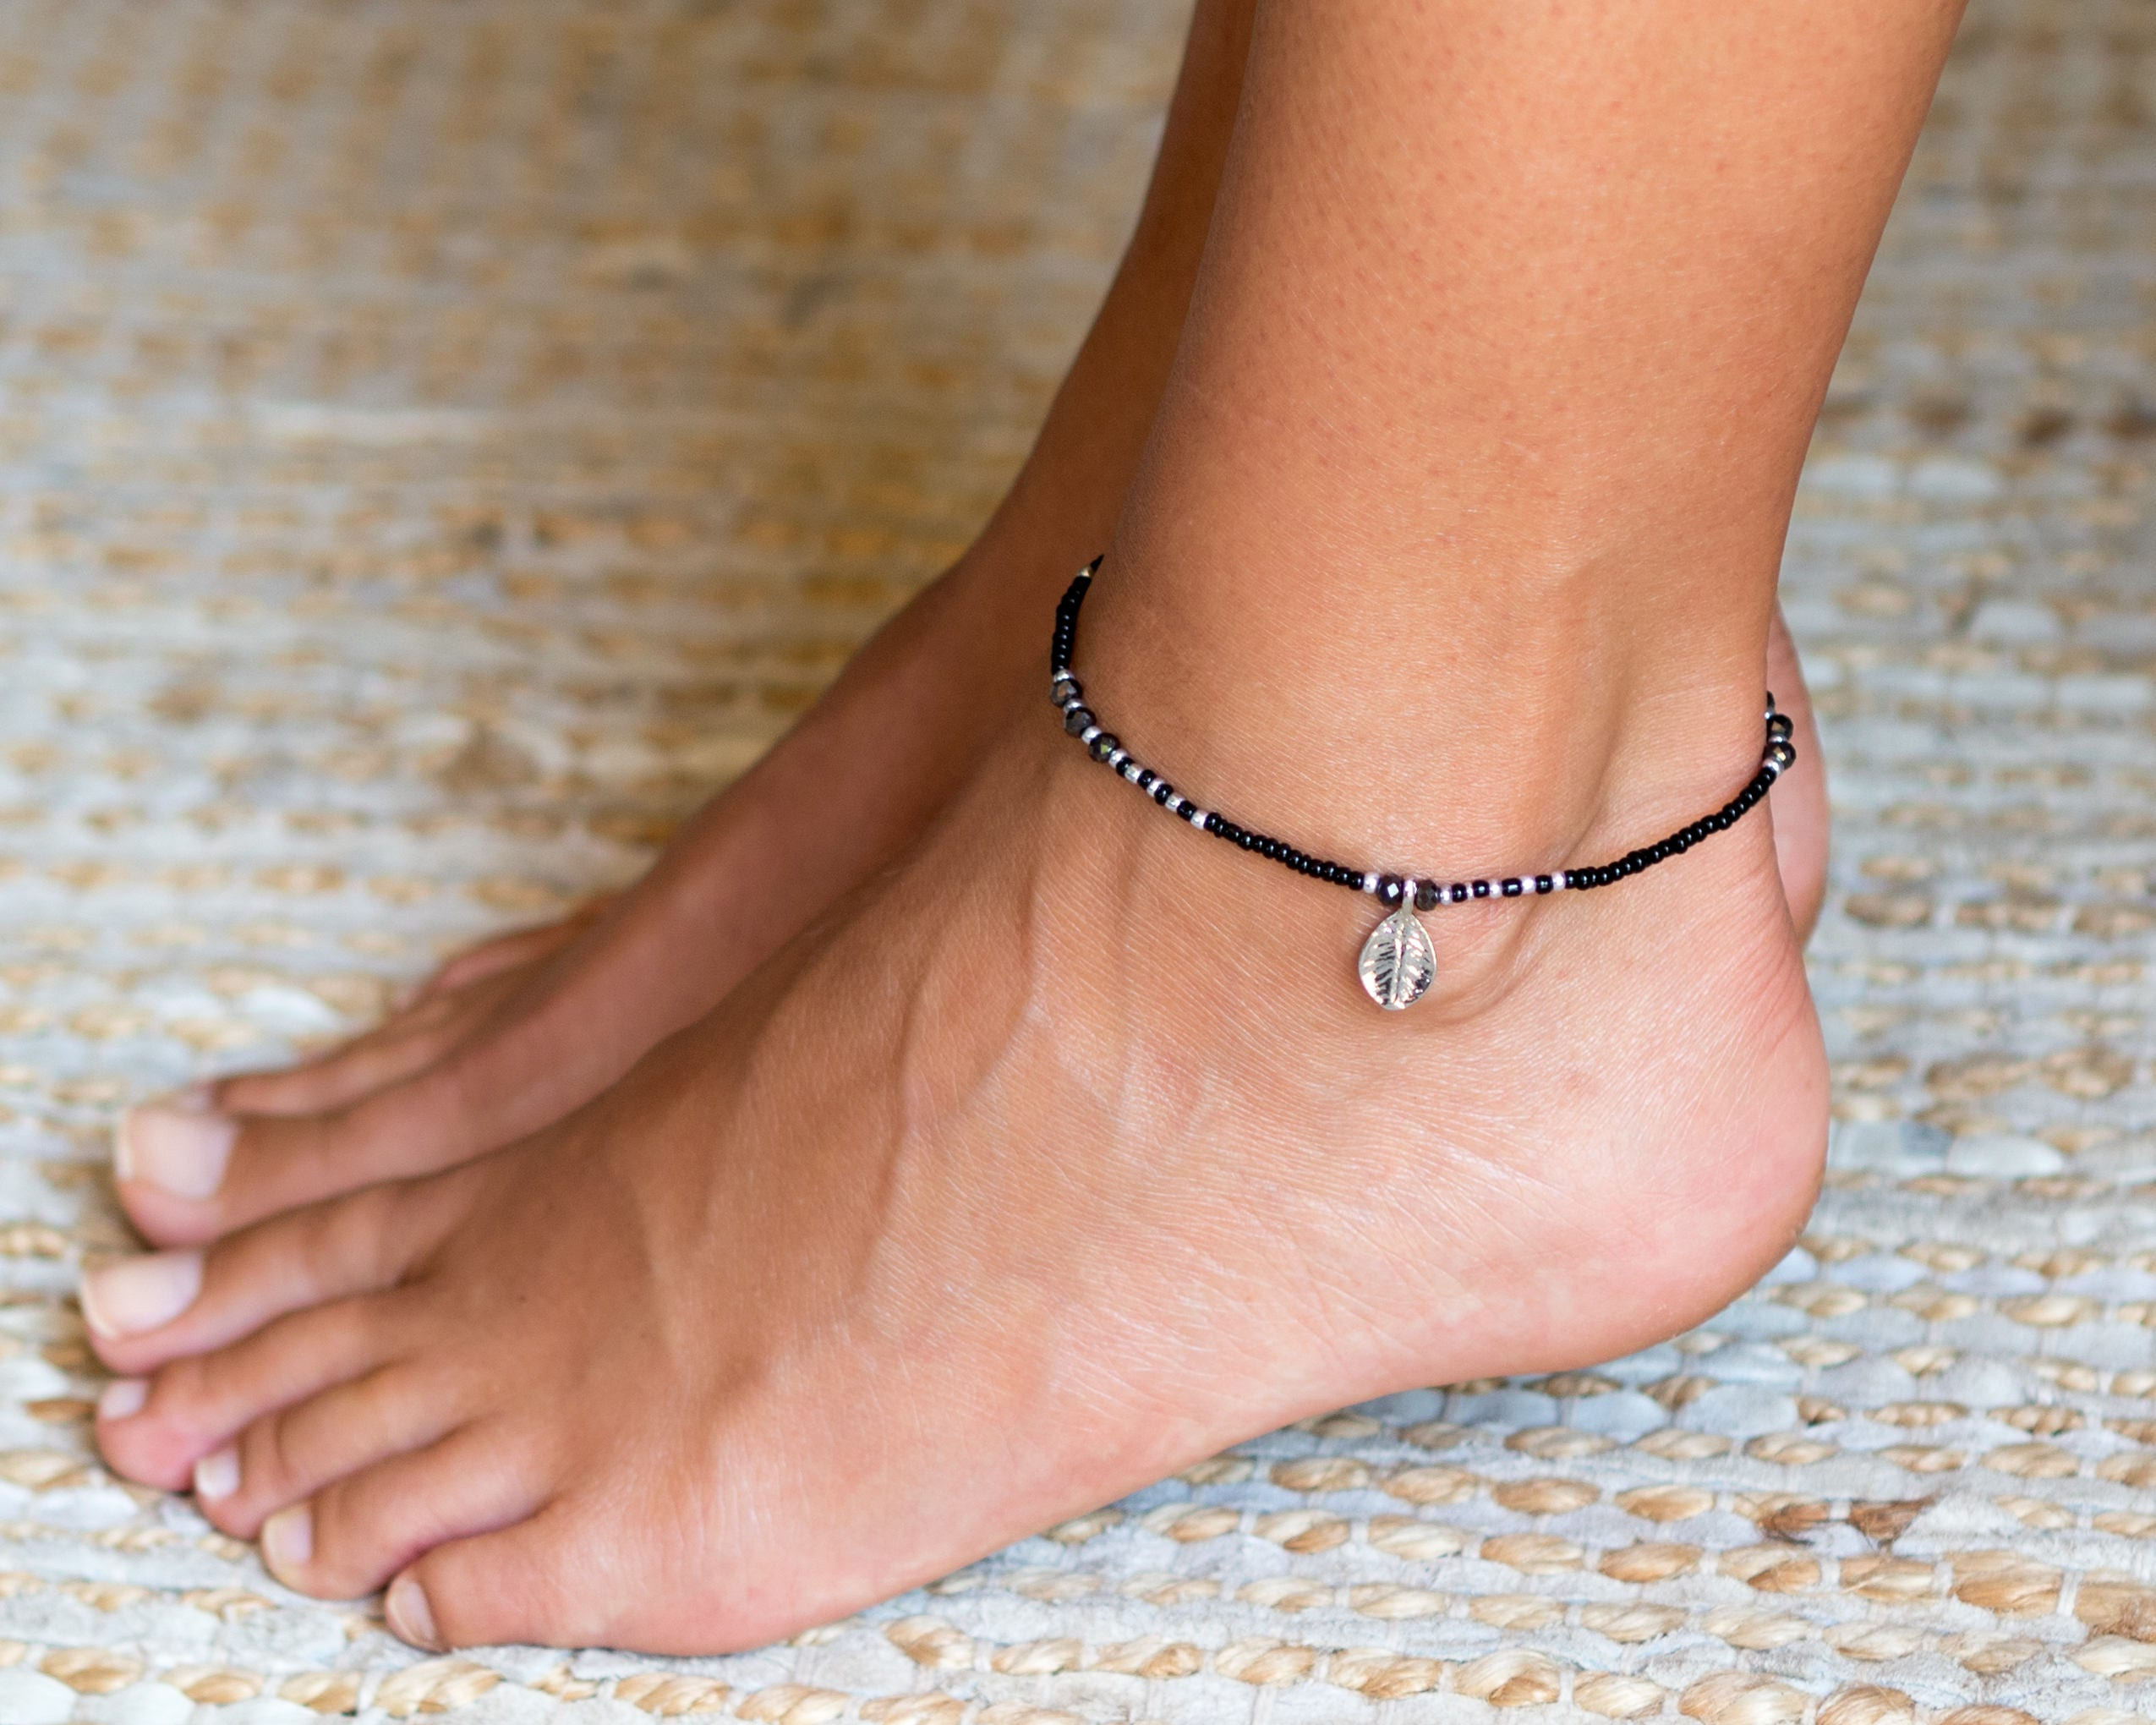 silvertone fashion to online anklet for buy where ladies bahana in kl oxidised malaysia accessories girls n anklets jewelry rathi urban product indie women